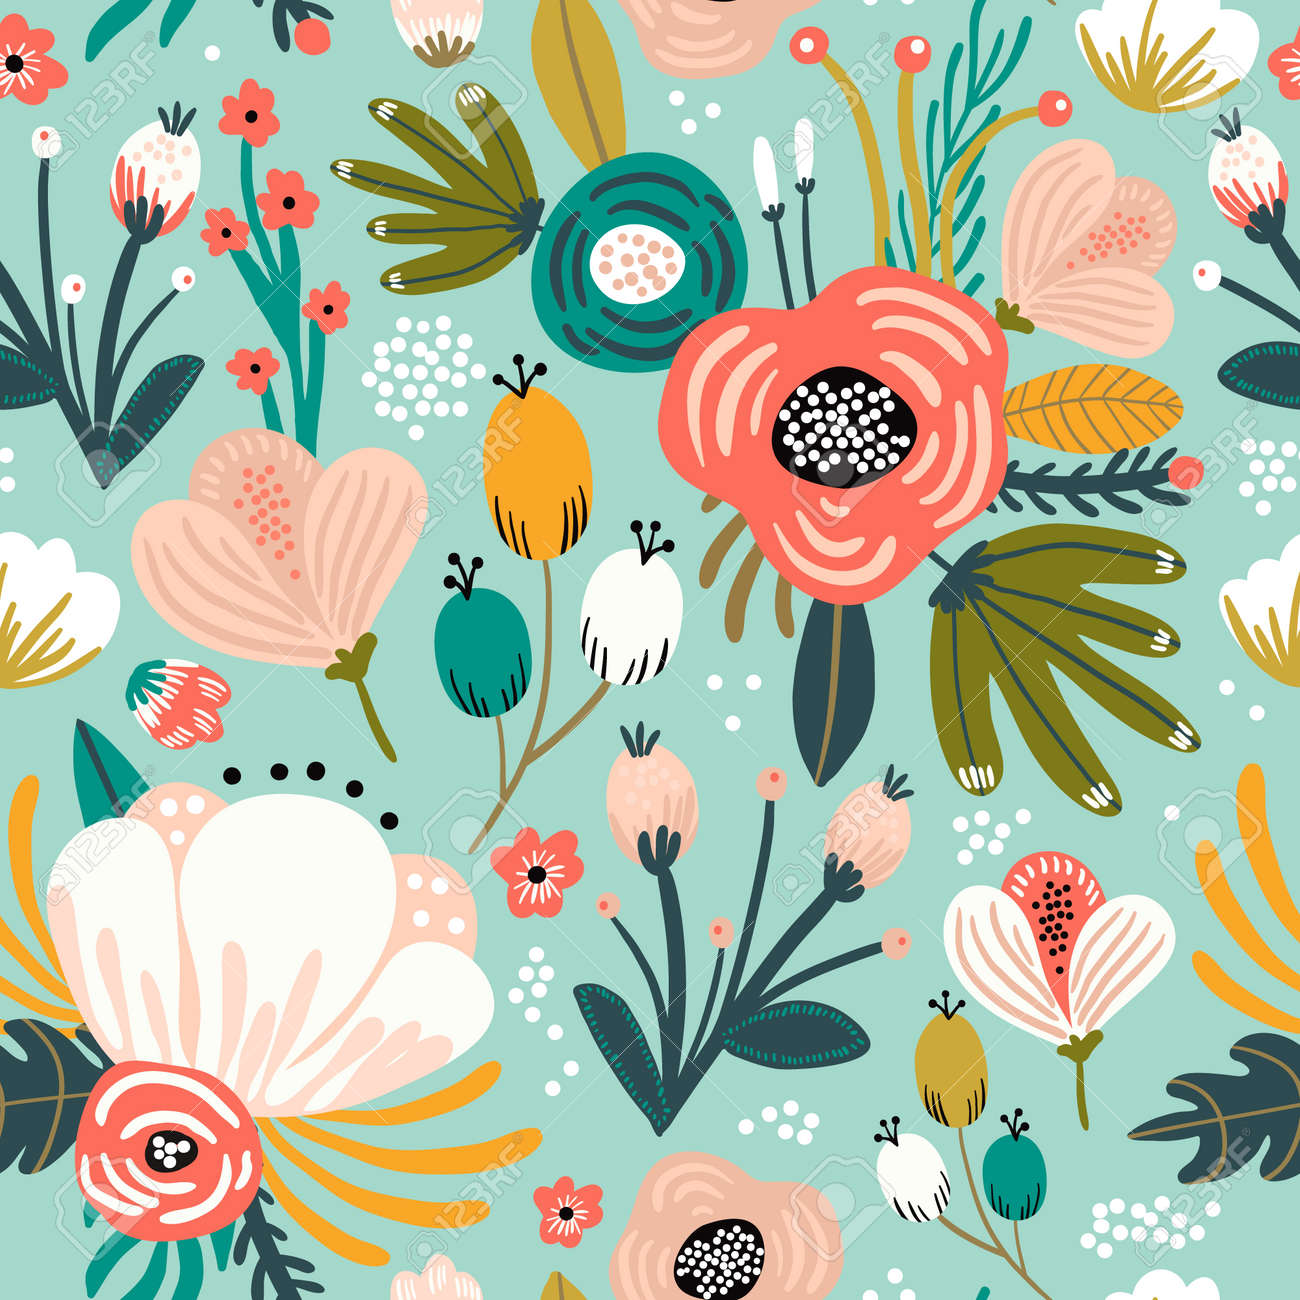 Seamless pattern with flowers,palm branch, leaves. Creative floral texture. Great for fabric, textile Vector Illustration - 114968096